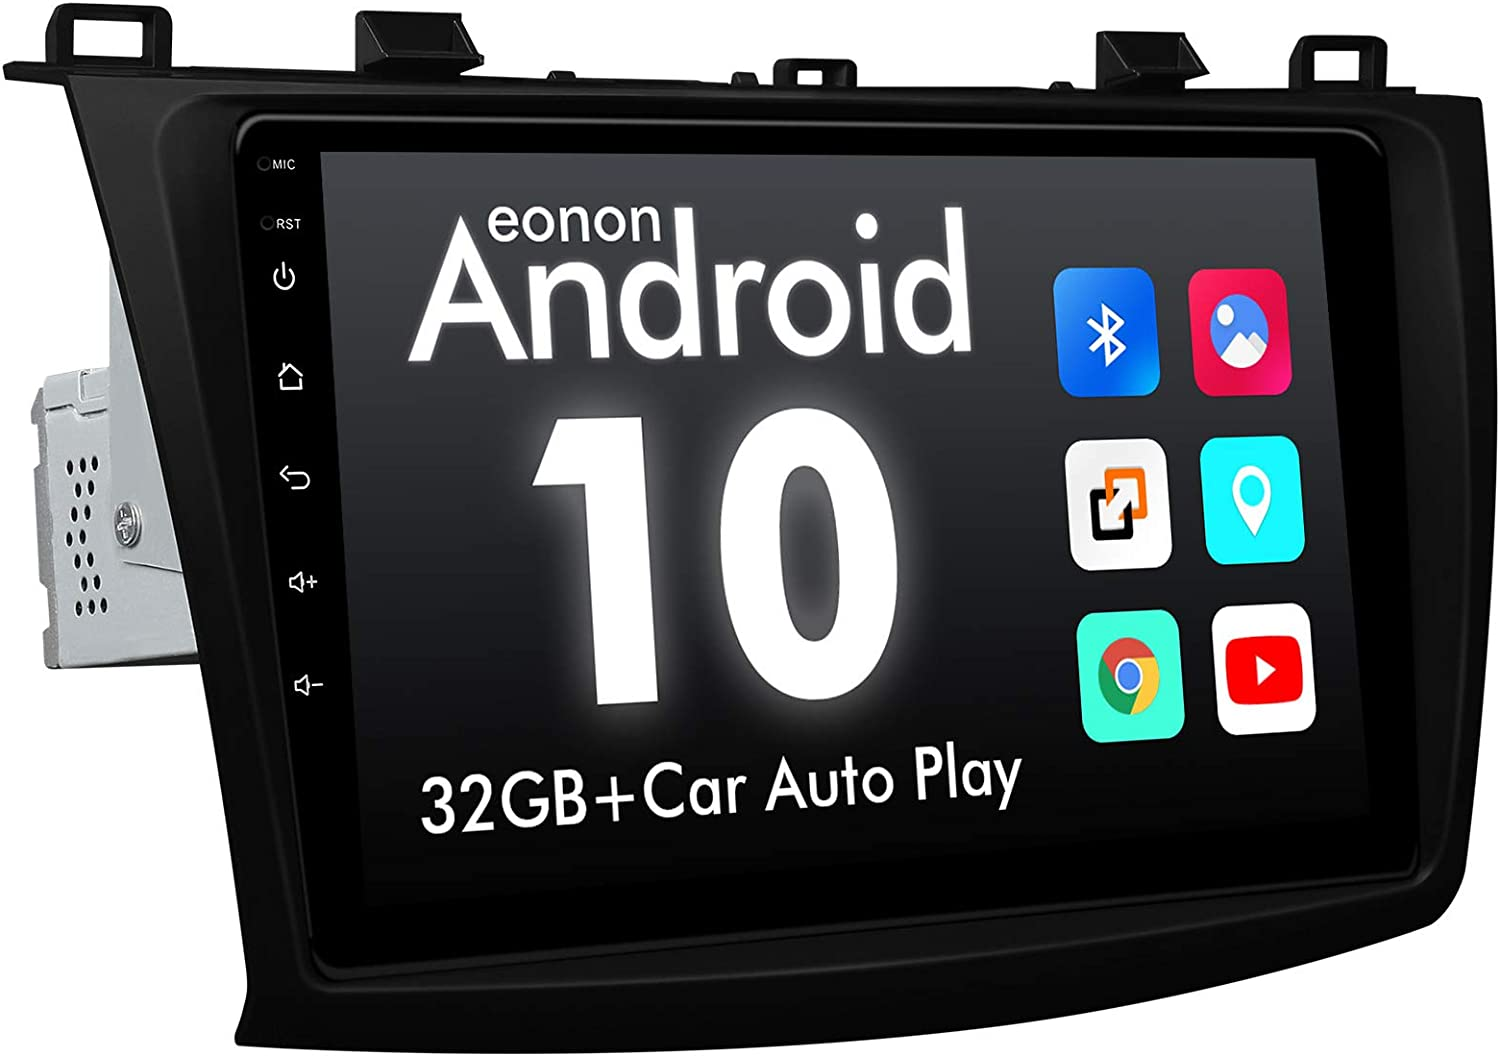 eonon GA2186 Android 10 7 LCD Touchscreen Indash Double Din Car Stereo 2GB Ram 32GB Rom Quad-Core GPS Navigation FM RDS USB Universal Head Unit Support WiFi Bluetooth 5.0 NO DVD